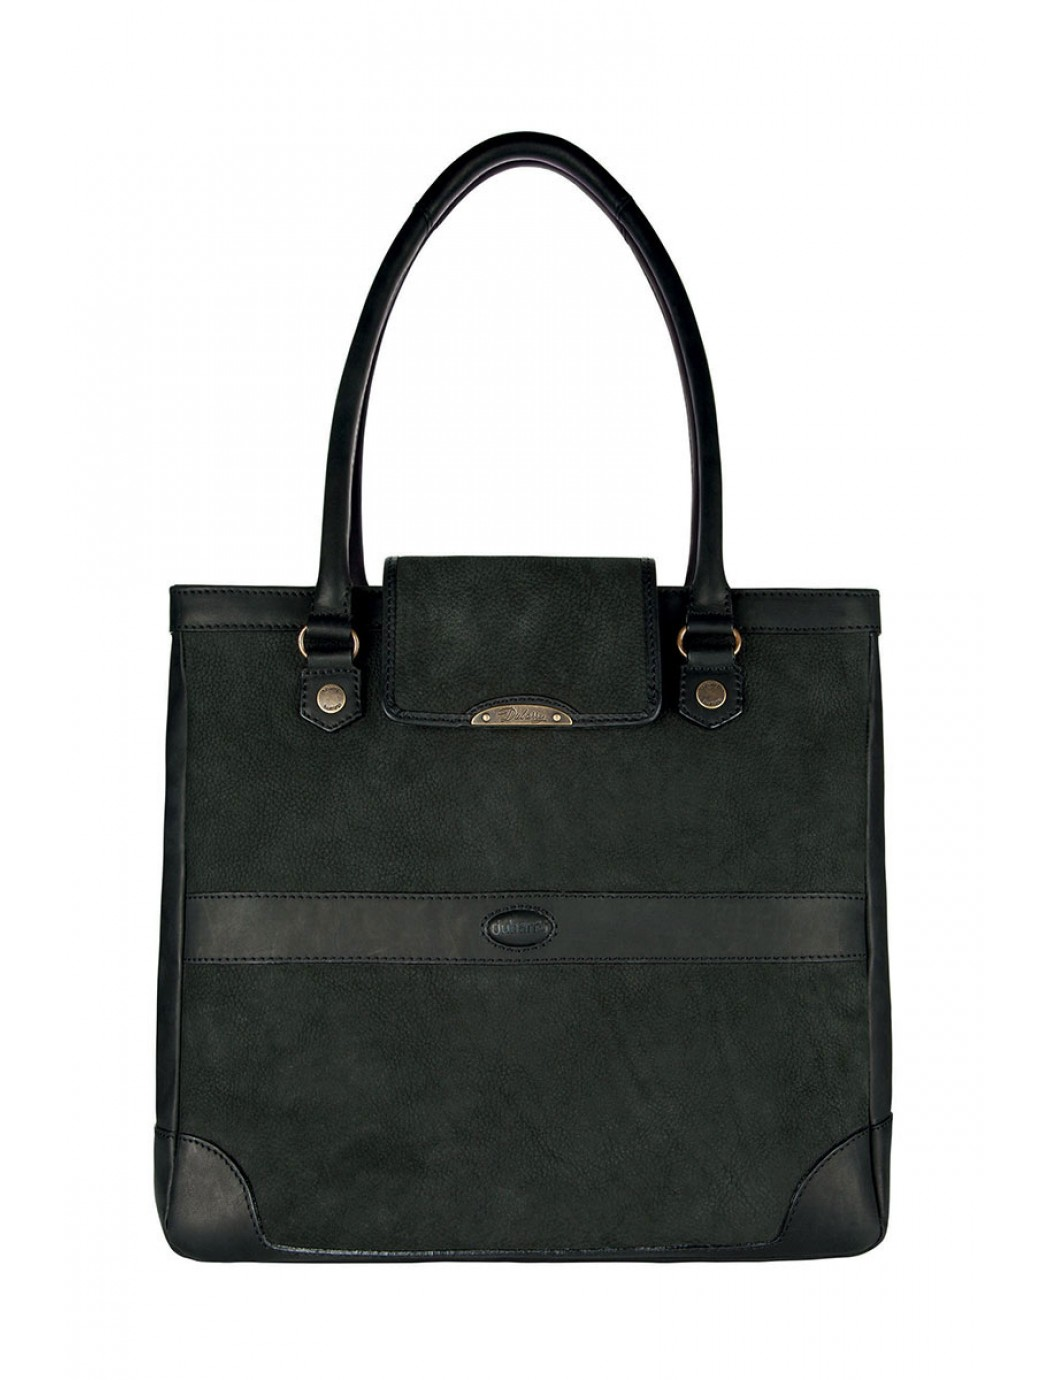 merrion-womens-bags-luggage-black